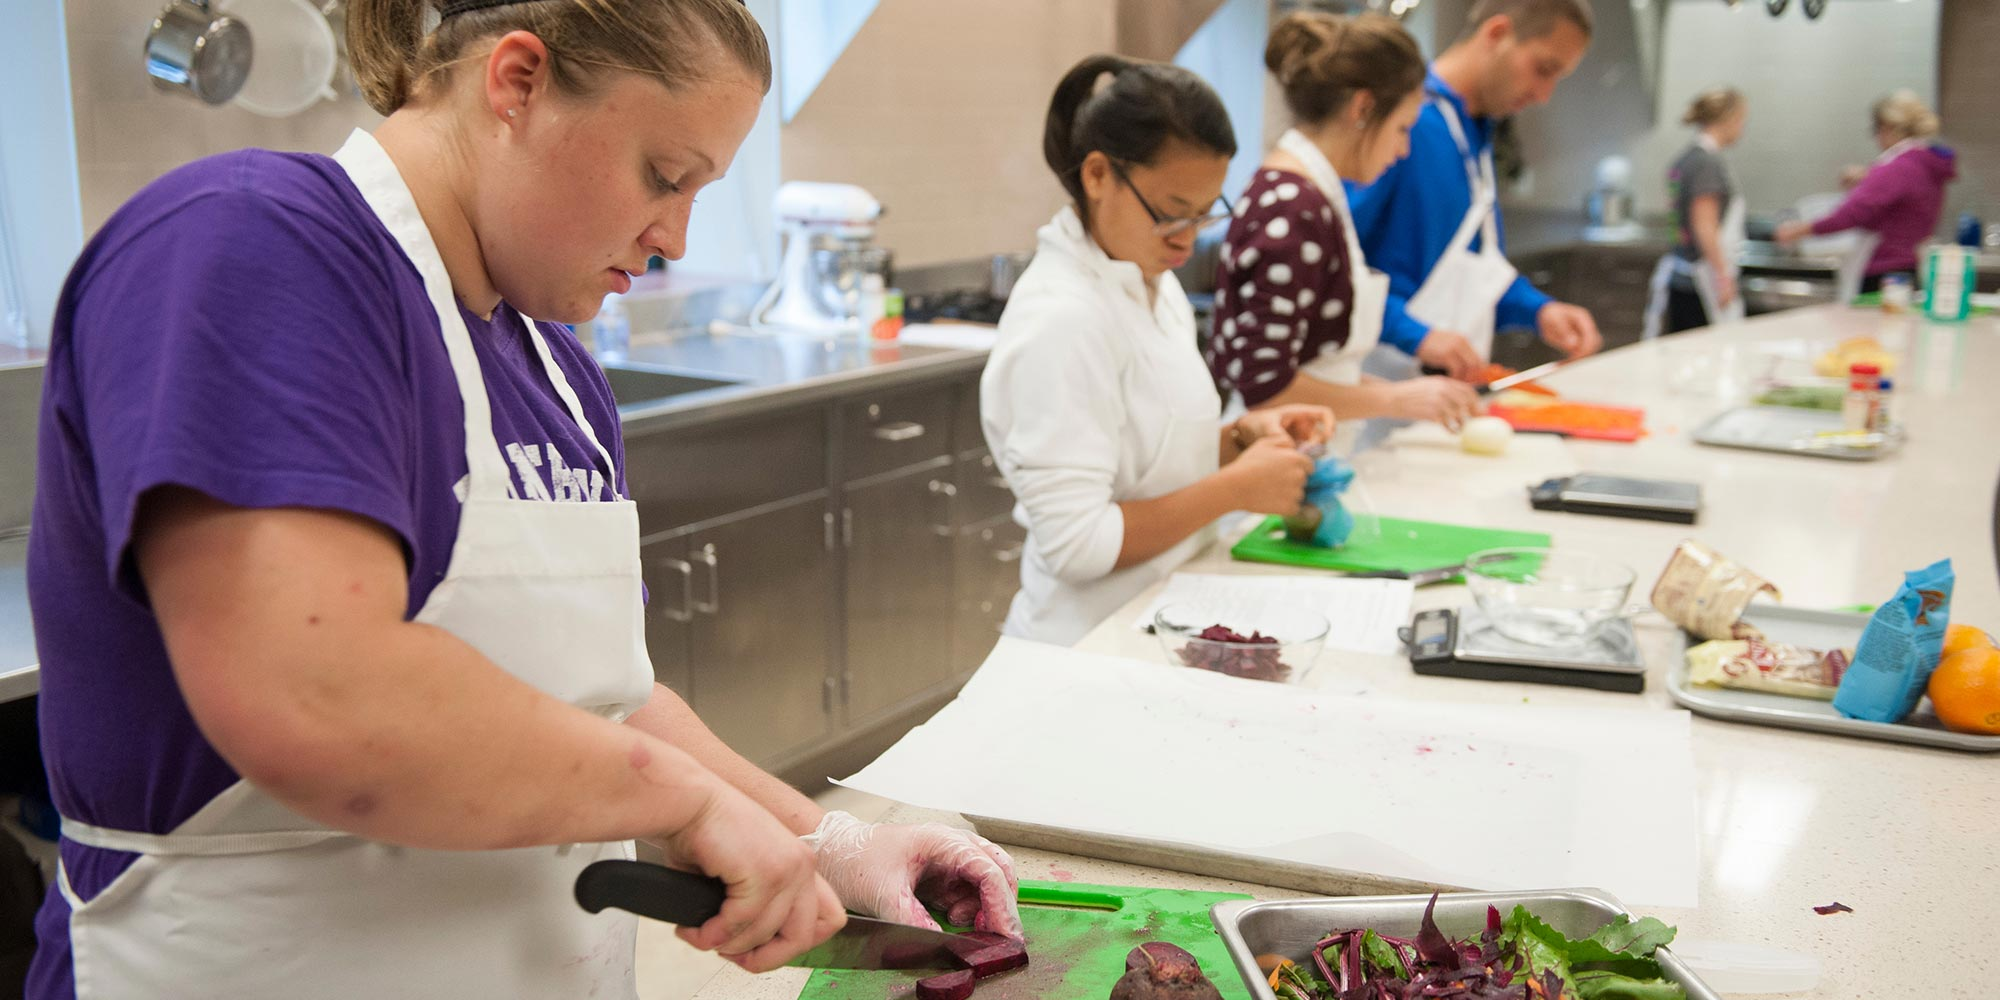 Dietics students working in the lab.